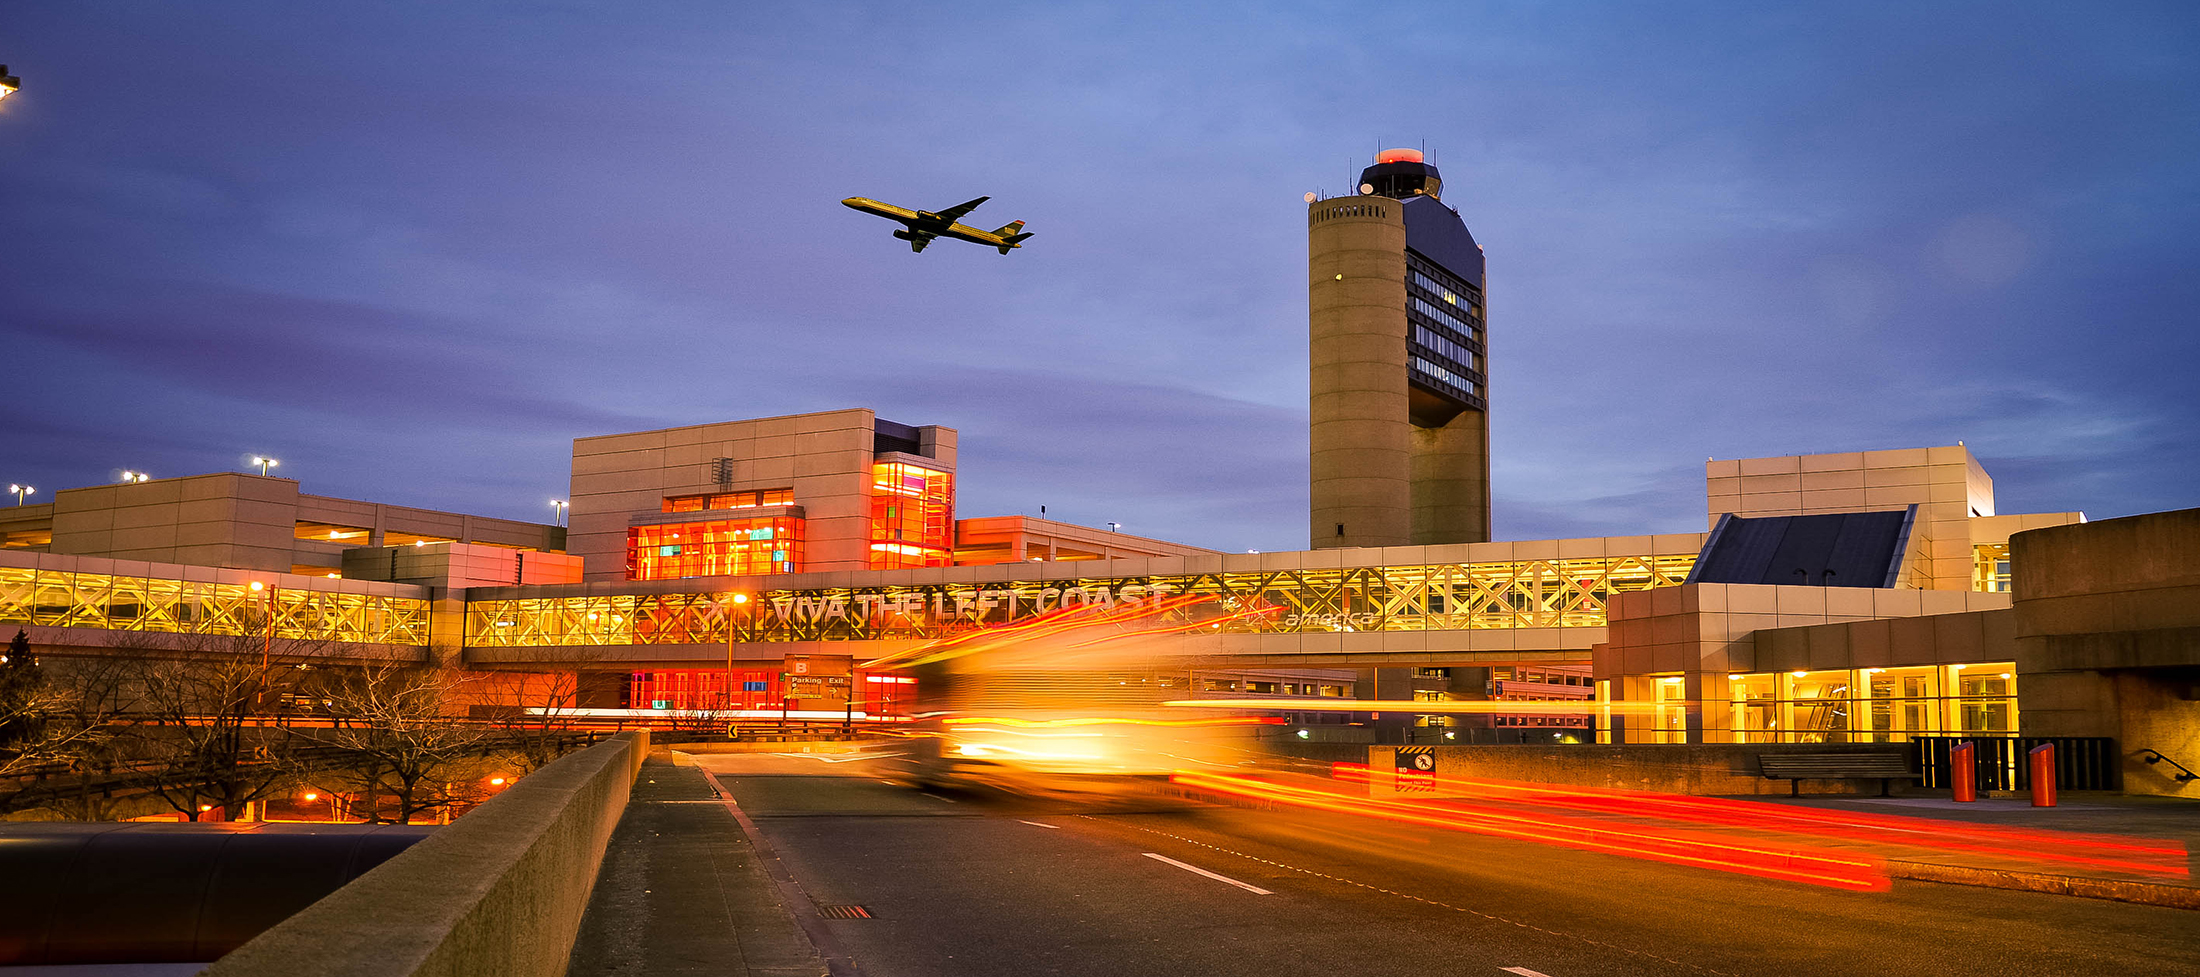 Boston Logan is the First U.S. Airport to Achieve Health Accreditation